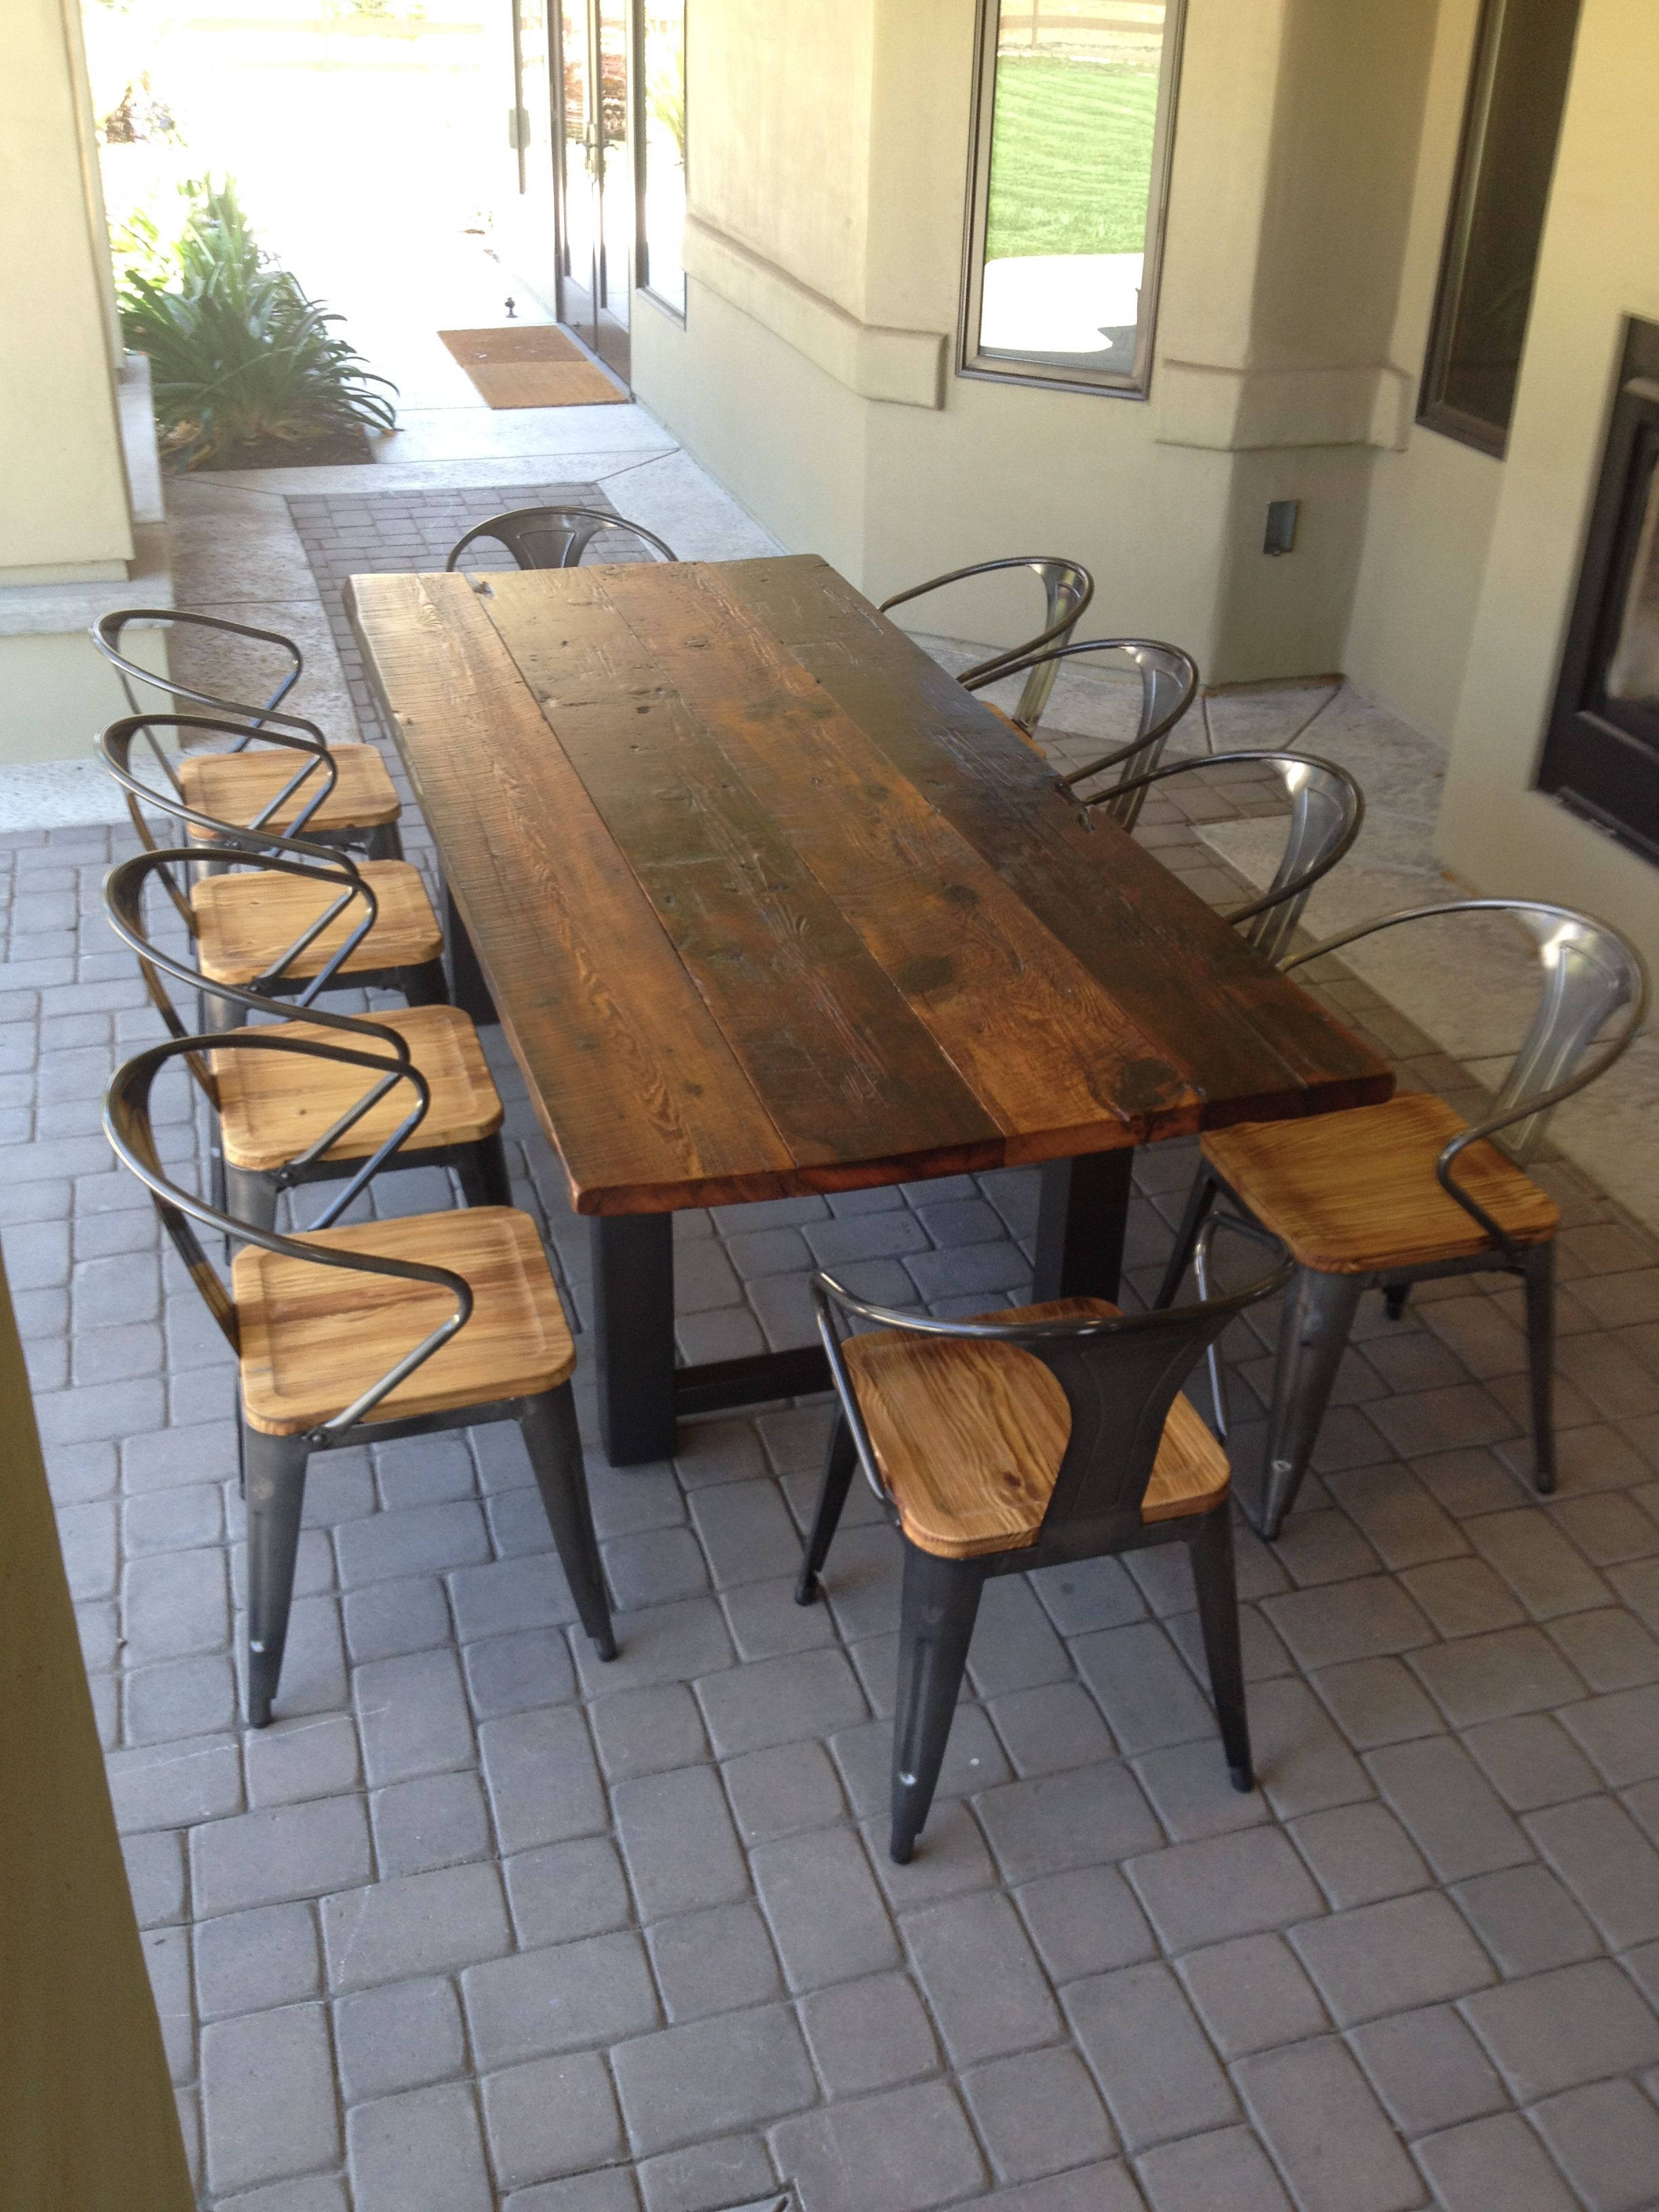 Reclaimed Wood and Steel Outdoor Dining Table 1 | The Coastal ...